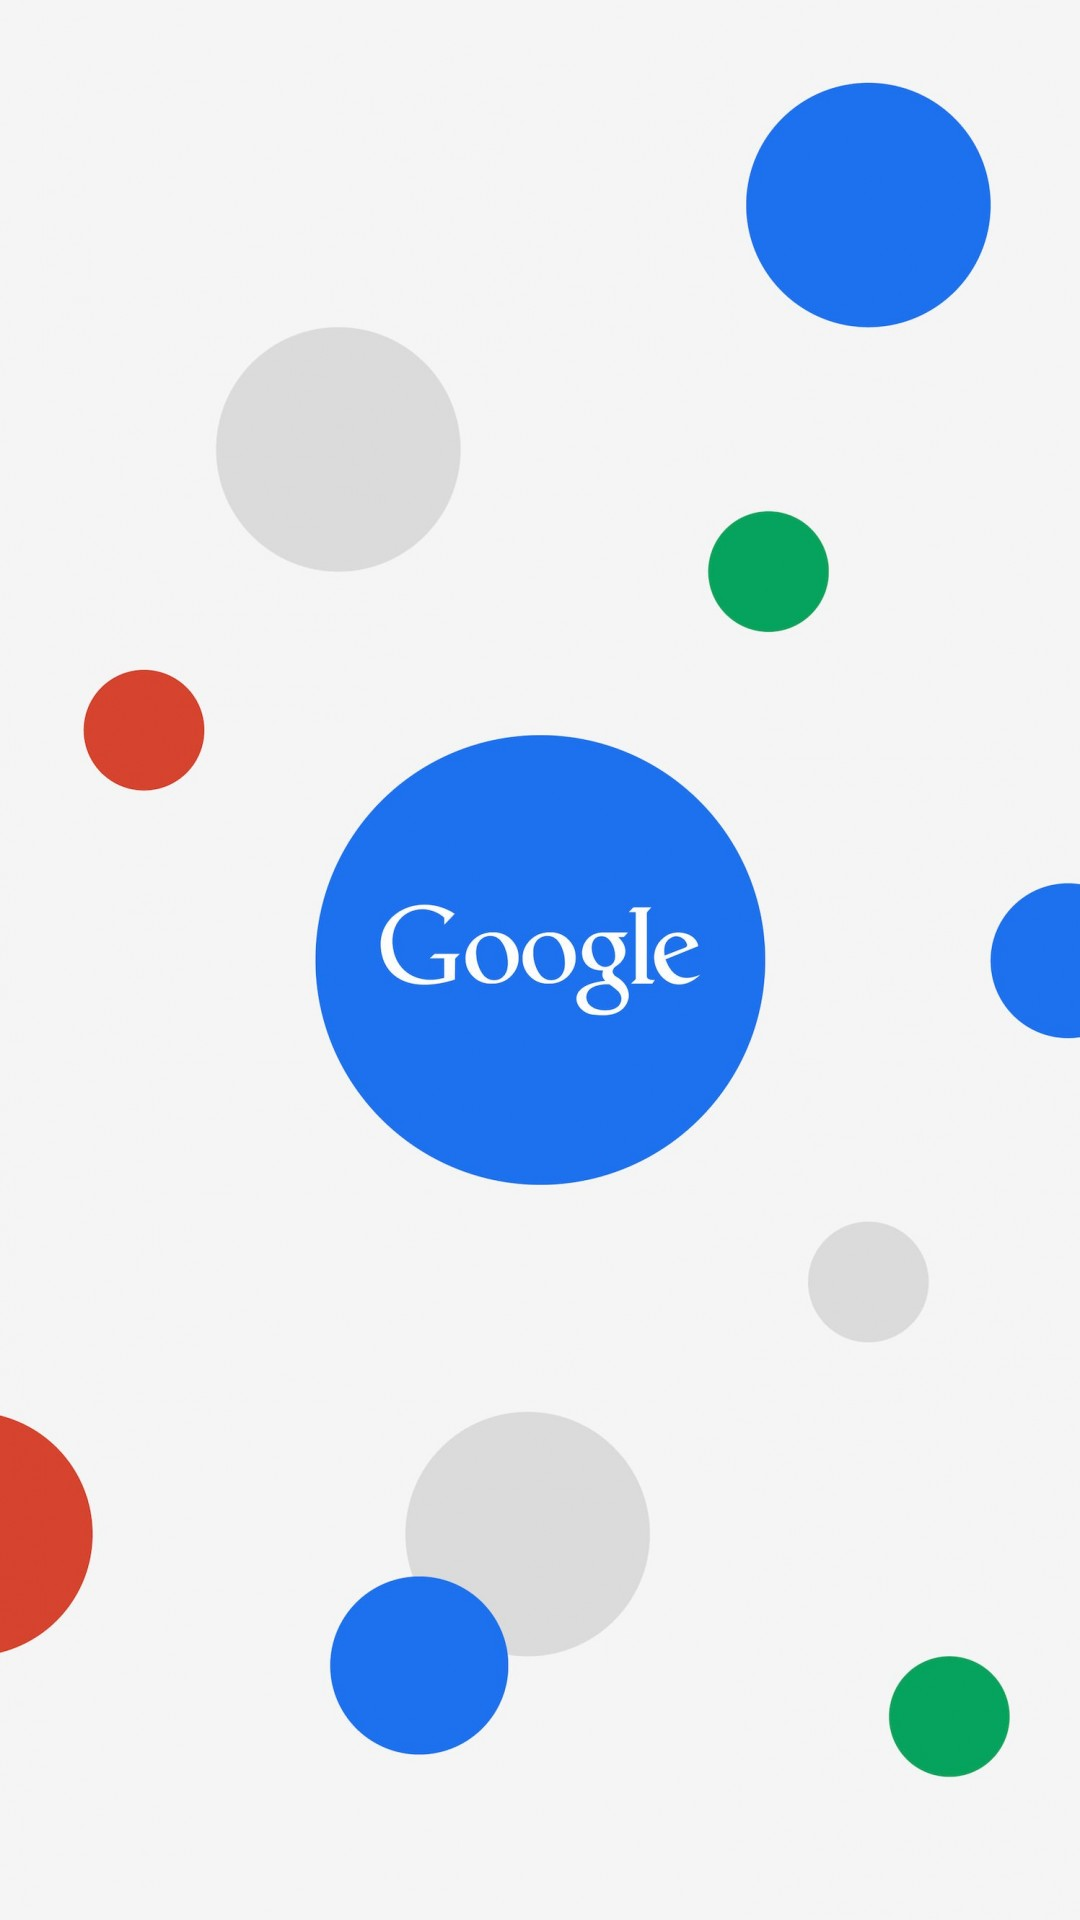 Google Circles Light Wallpaper for Motorola Moto X